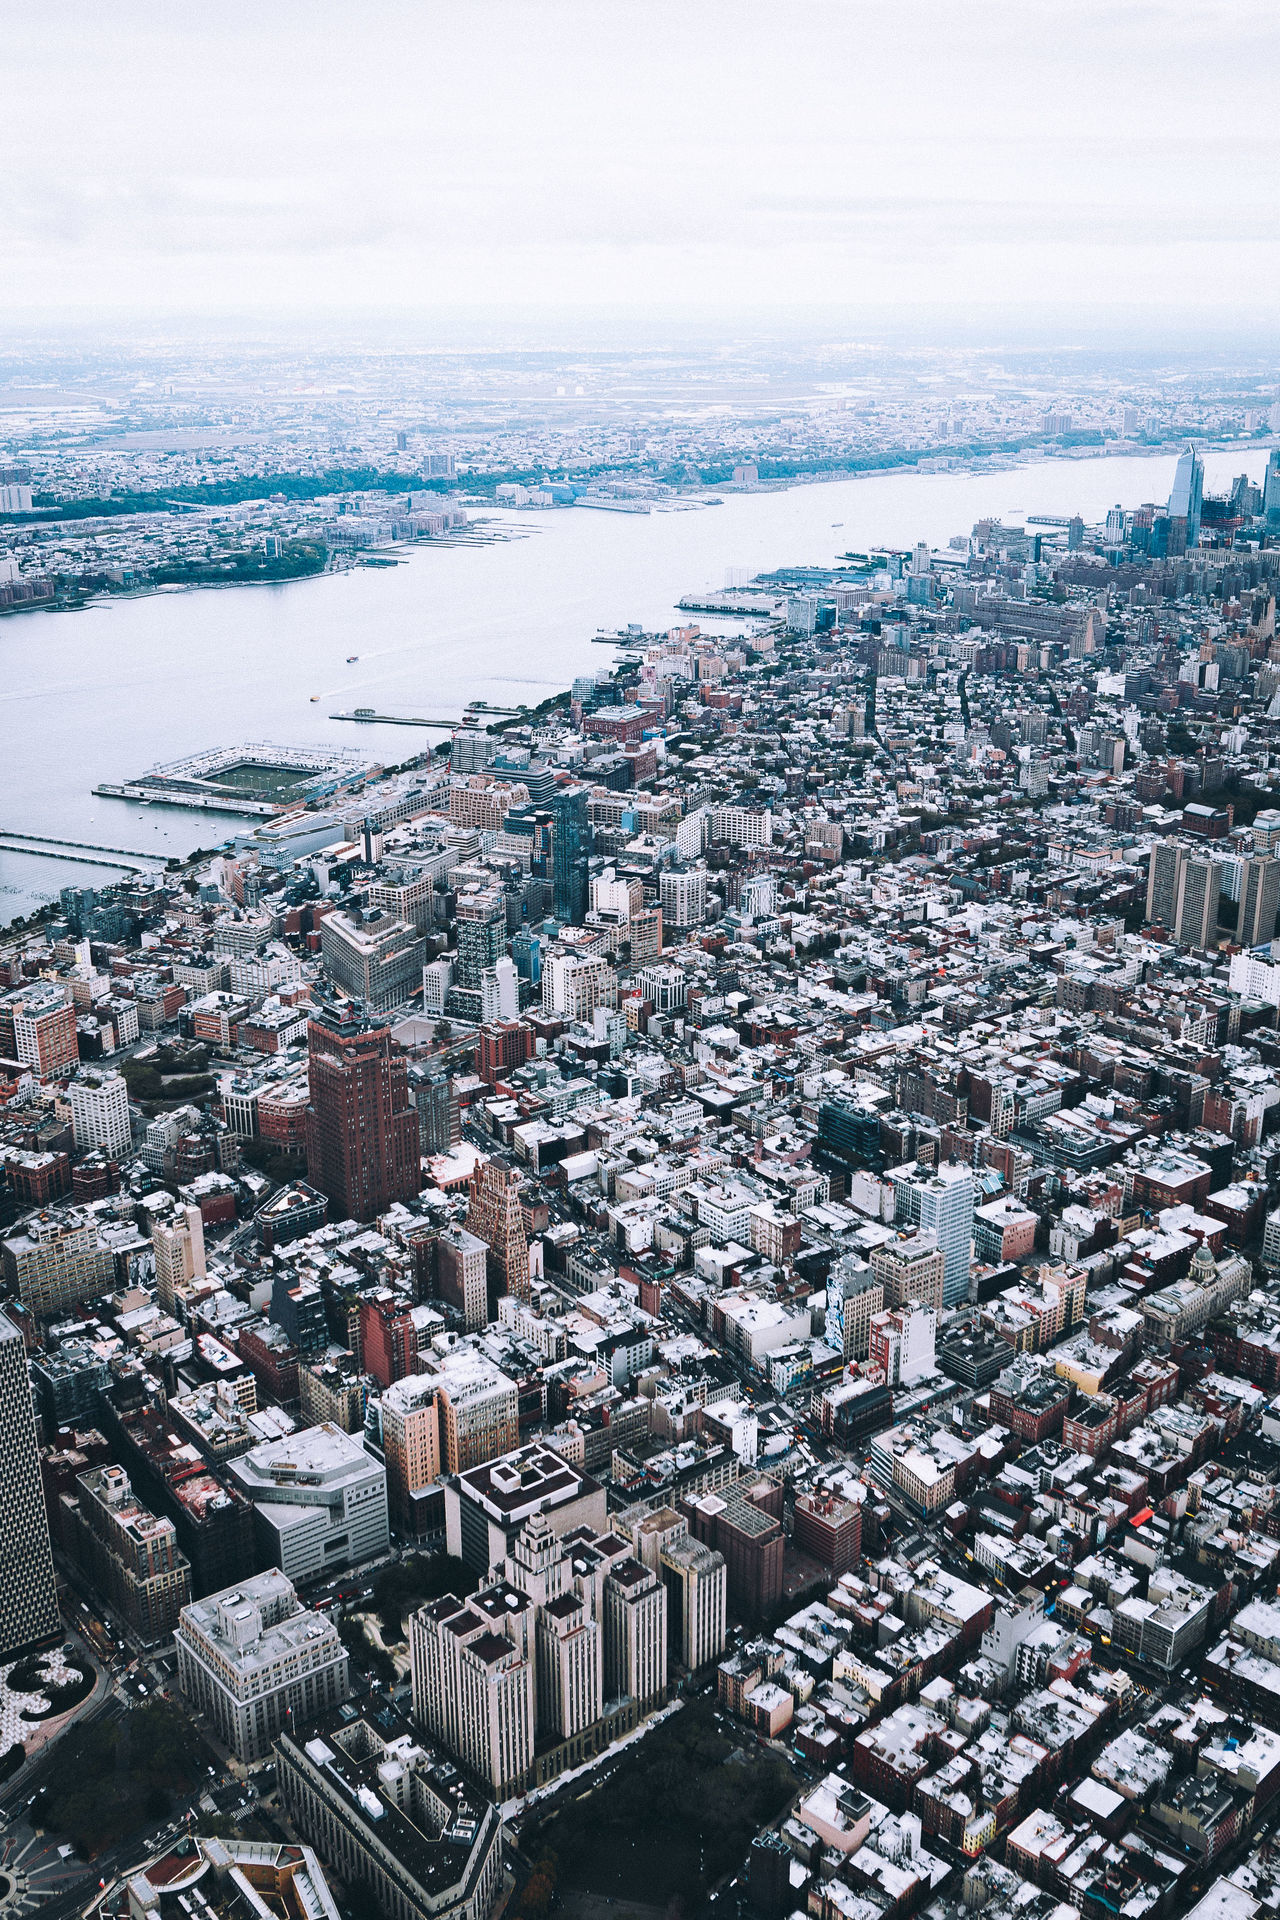 Adventure Aerial Shot Aerial View Architecture Check This Out City Colorful Colors Cool Downtown District Exploring EyeEm Best Shots EyeEm Gallery Flying High High Angle View New York New York City Skyline Skyscraper Streets Travel Travel Destinations Urban Urban Skyline USA